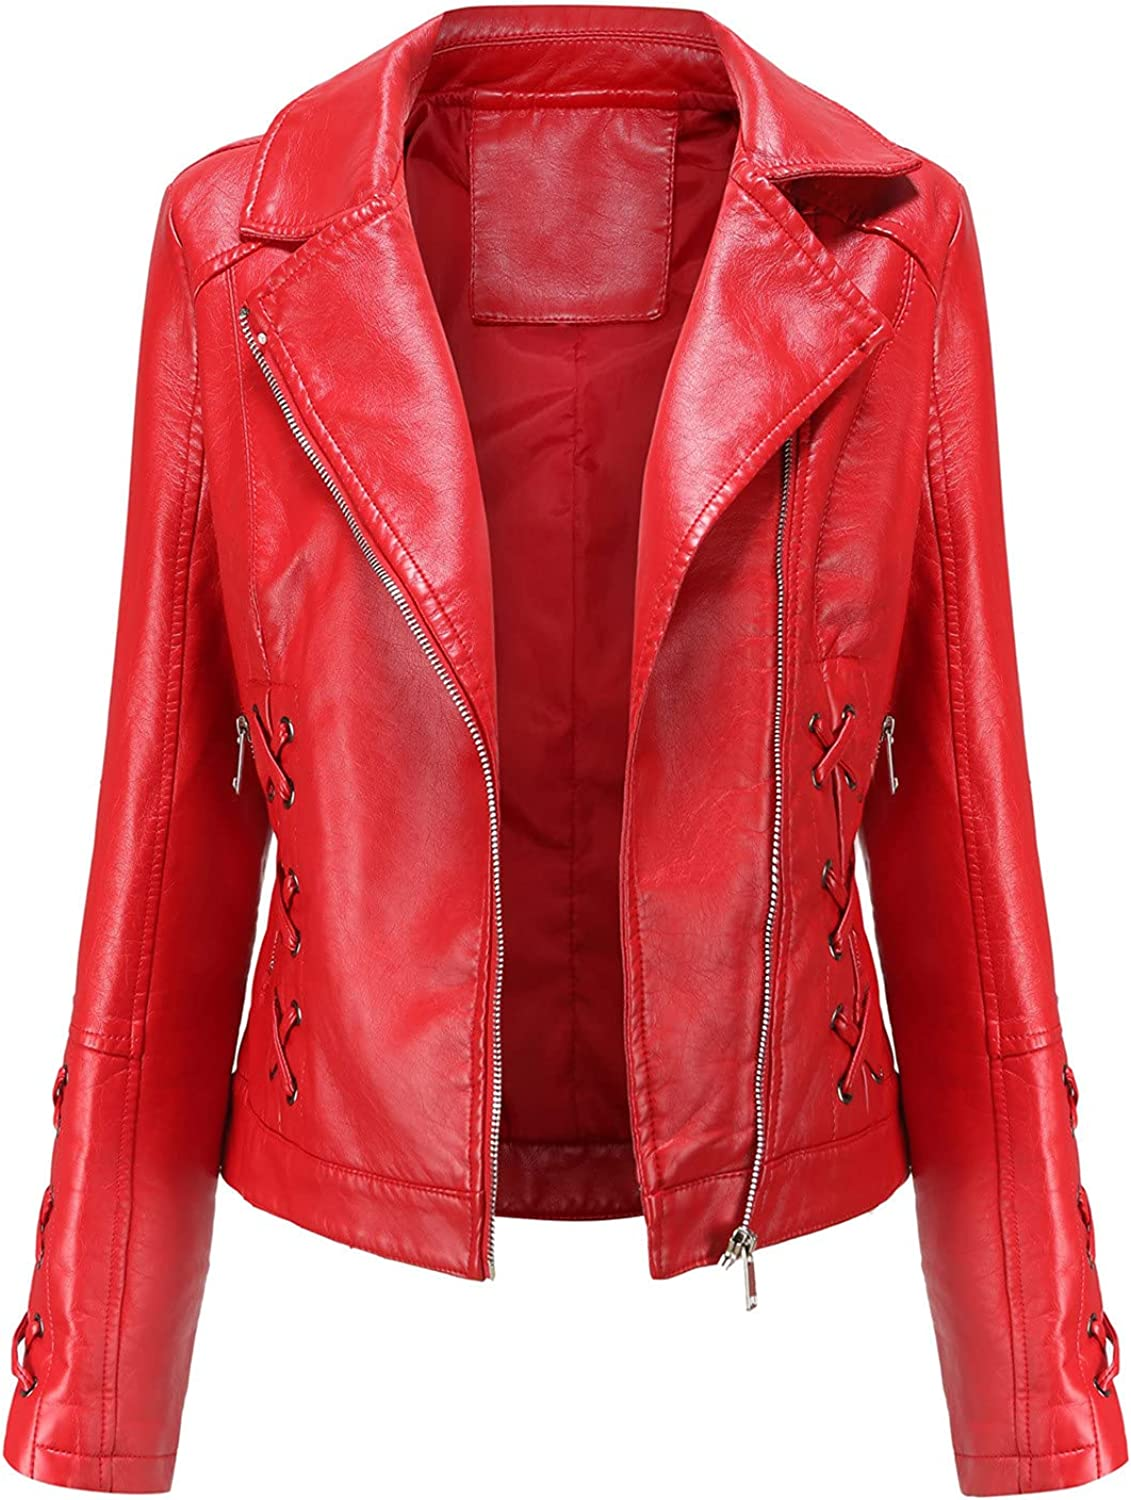 Euone_Clothes Overseas parallel import regular item Jackets for Women Fashion Casual Lea Ranking TOP19 Zipper